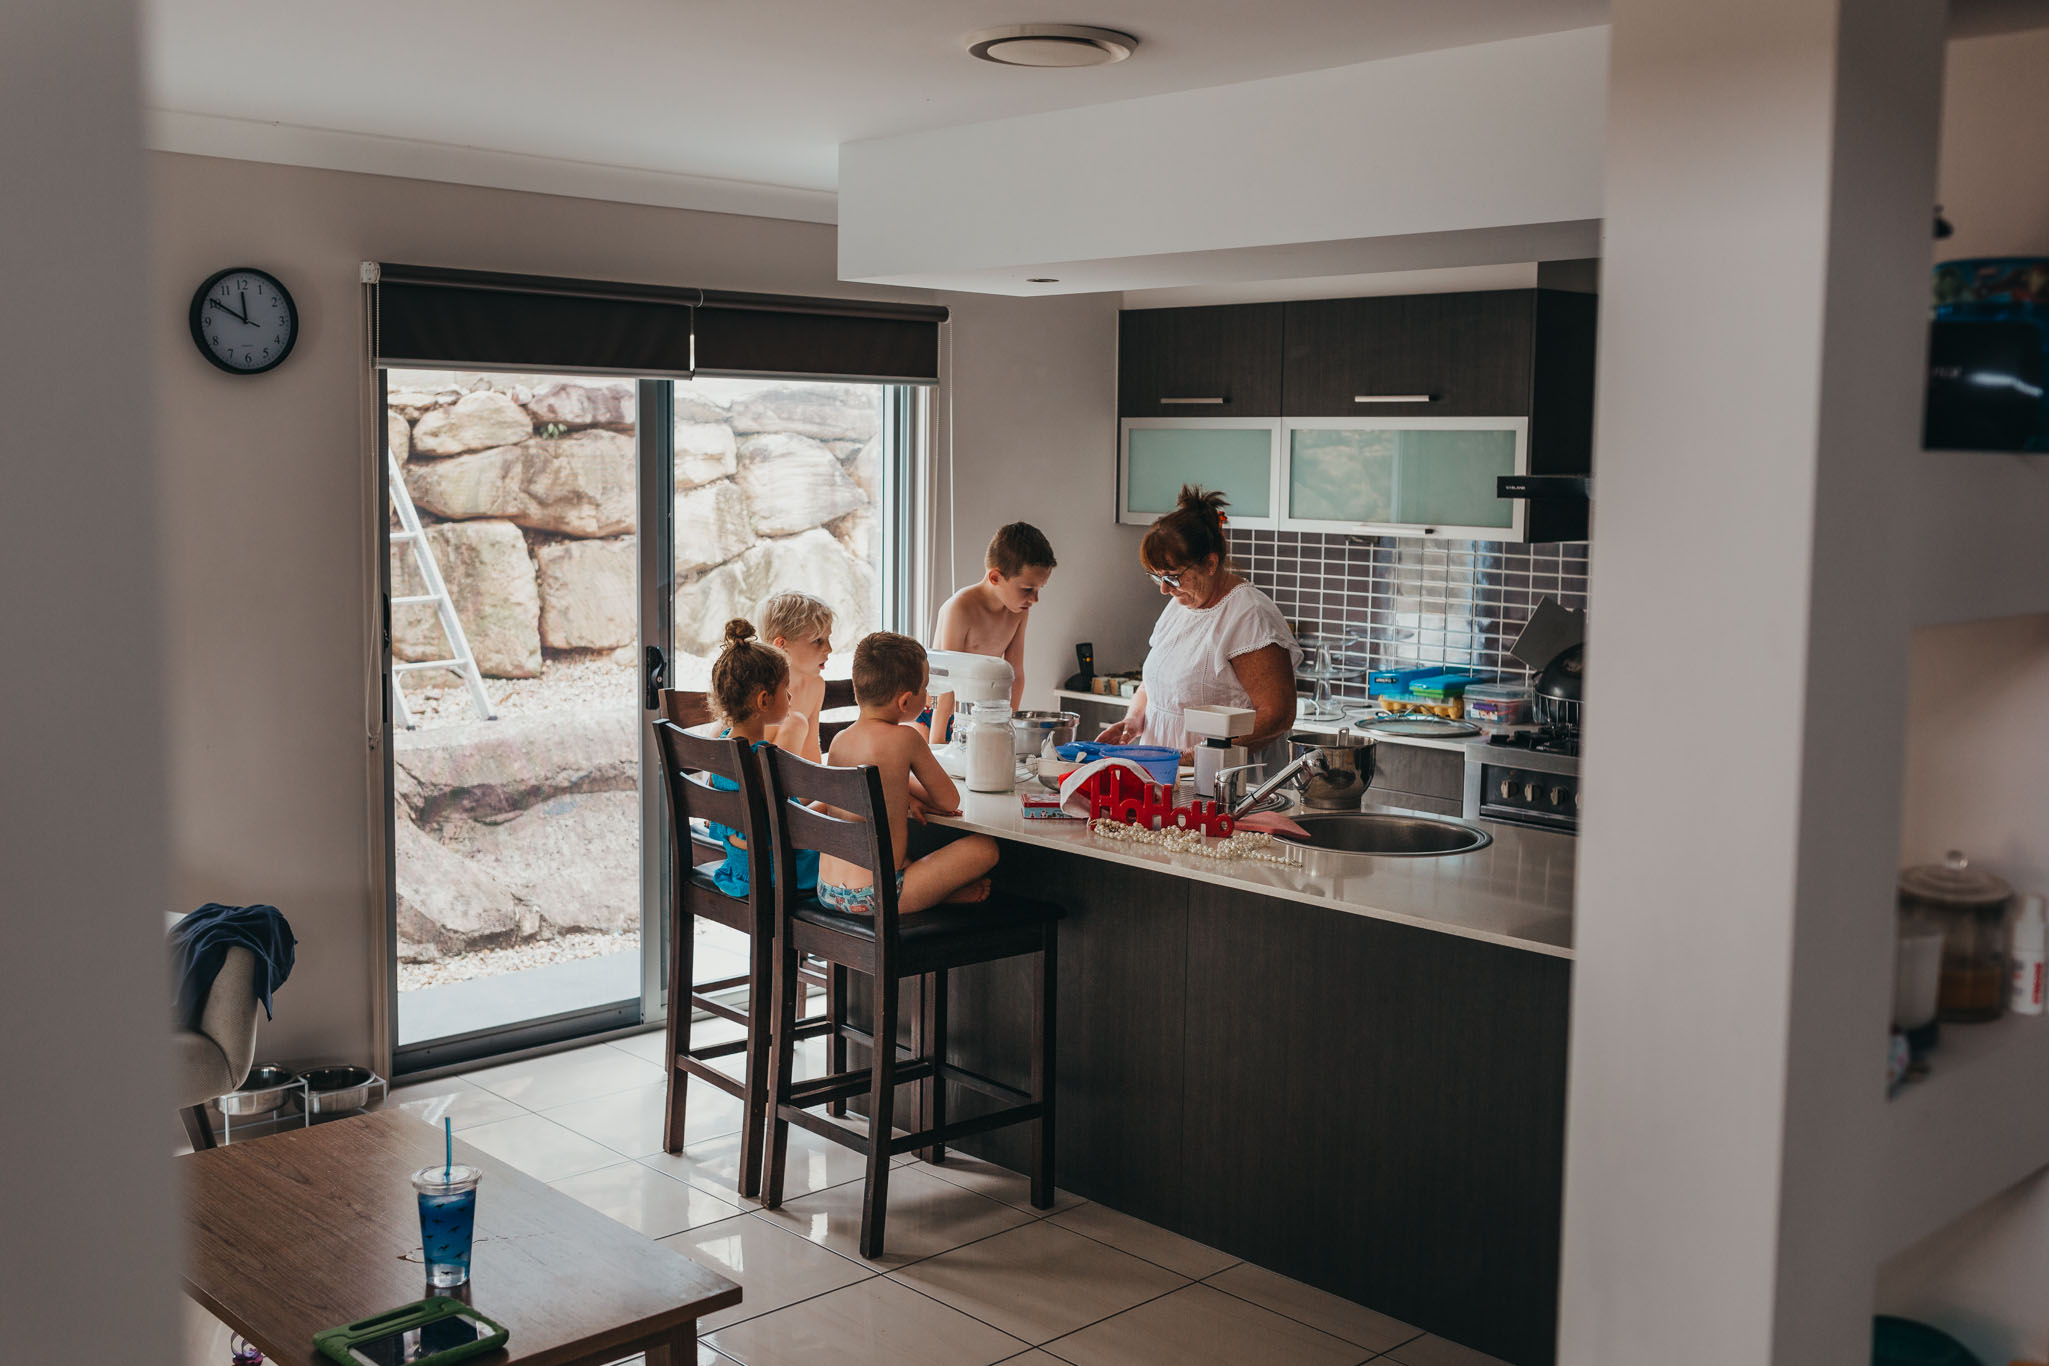 Grandma-with-her-4-grandkids-huddled-in-the-kitchen-to-make-xmas-shortbread